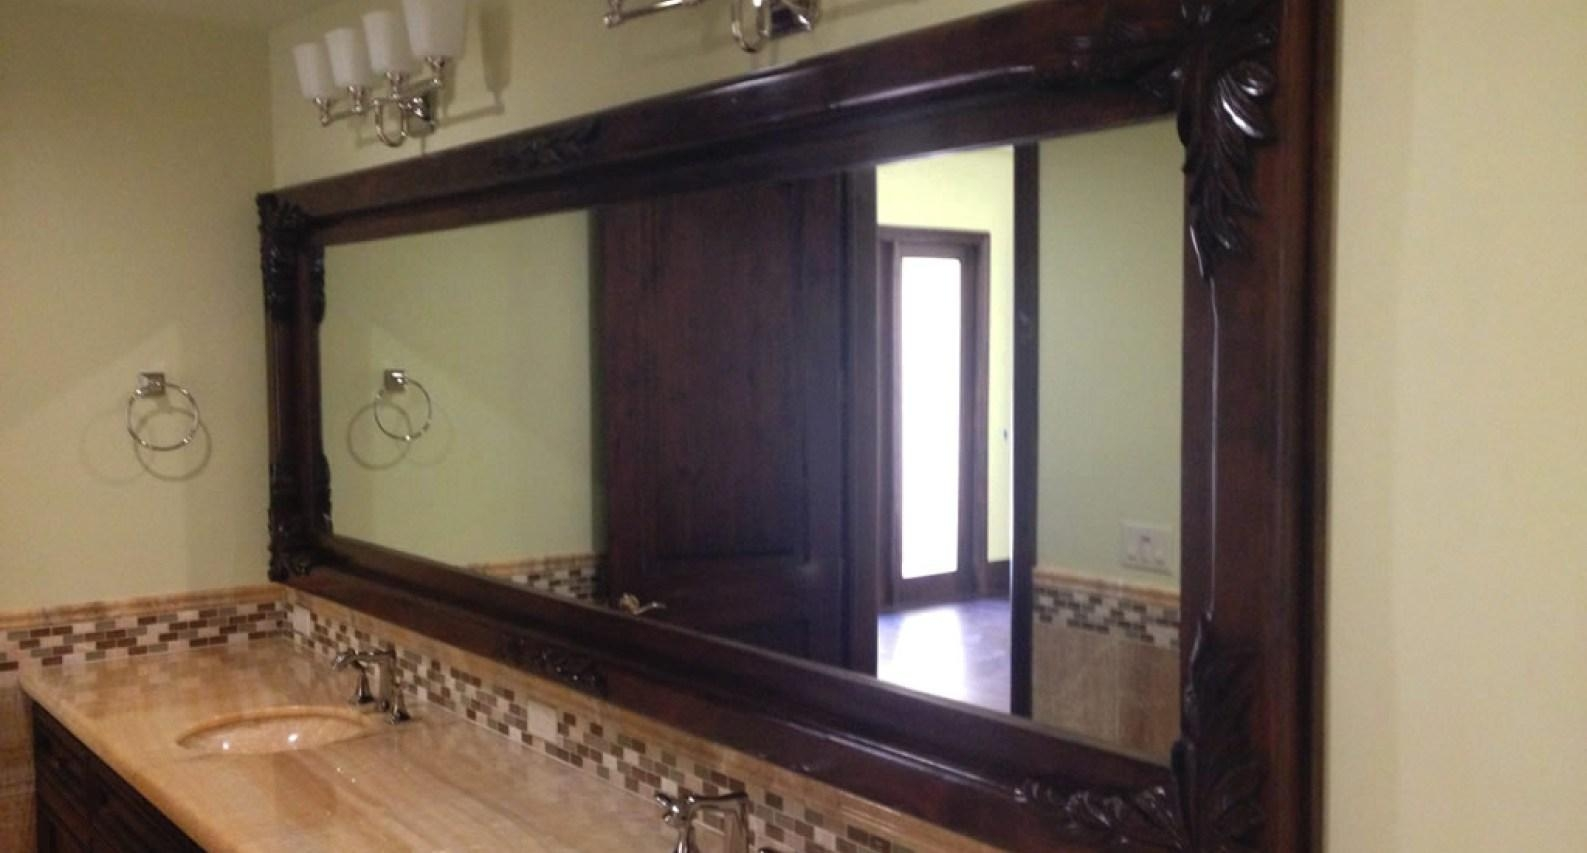 Mirror : Beech Wood Framed Mirrors Dreadful Beach Wood Framed Throughout Beech Wood Framed Mirrors (Image 11 of 20)